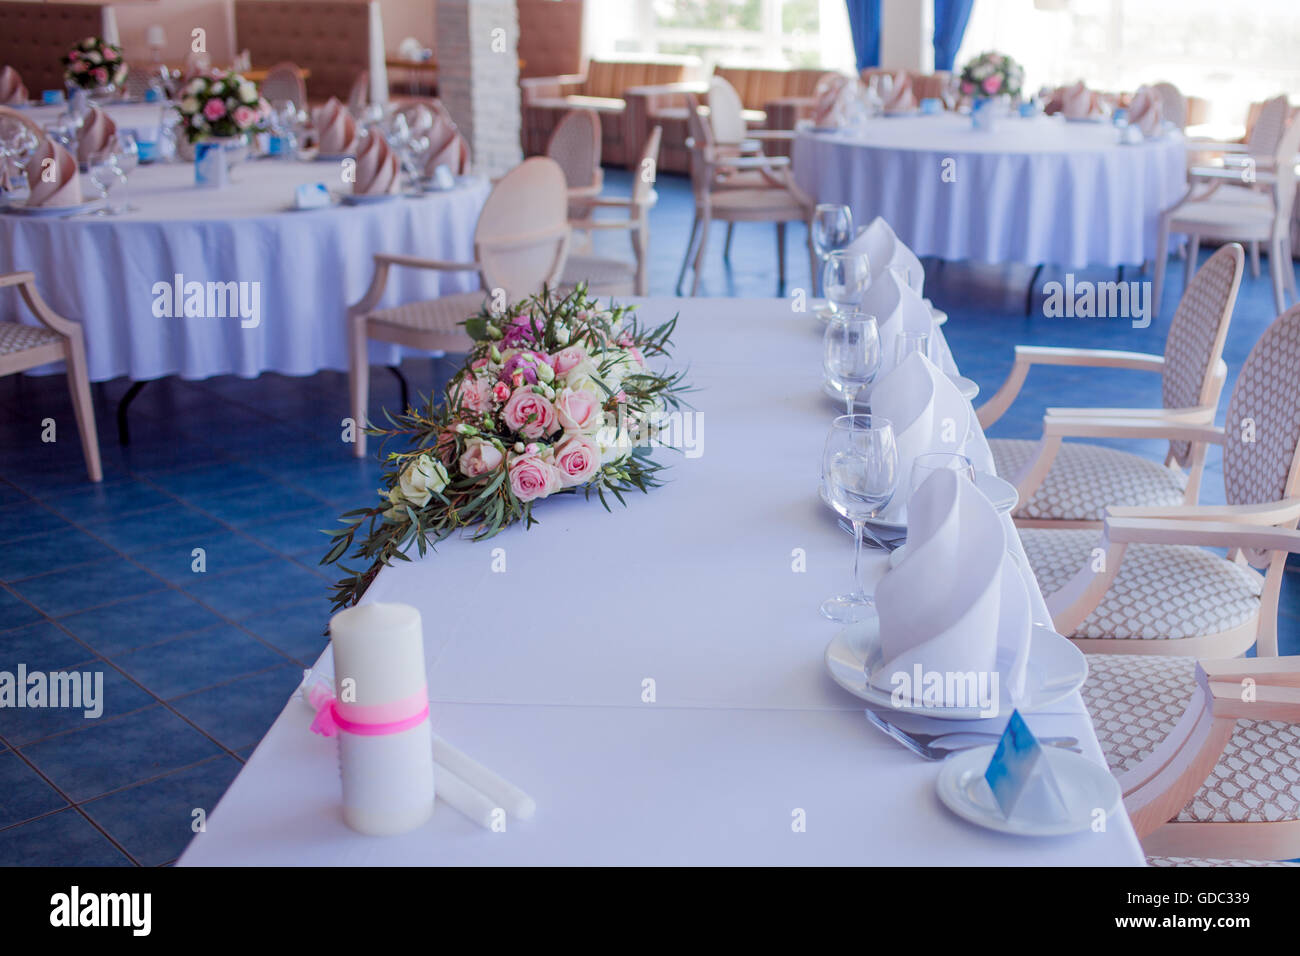 Wedding Banquet Small Restaurant In A Maritime Style Round Tables Stock Photo Alamy